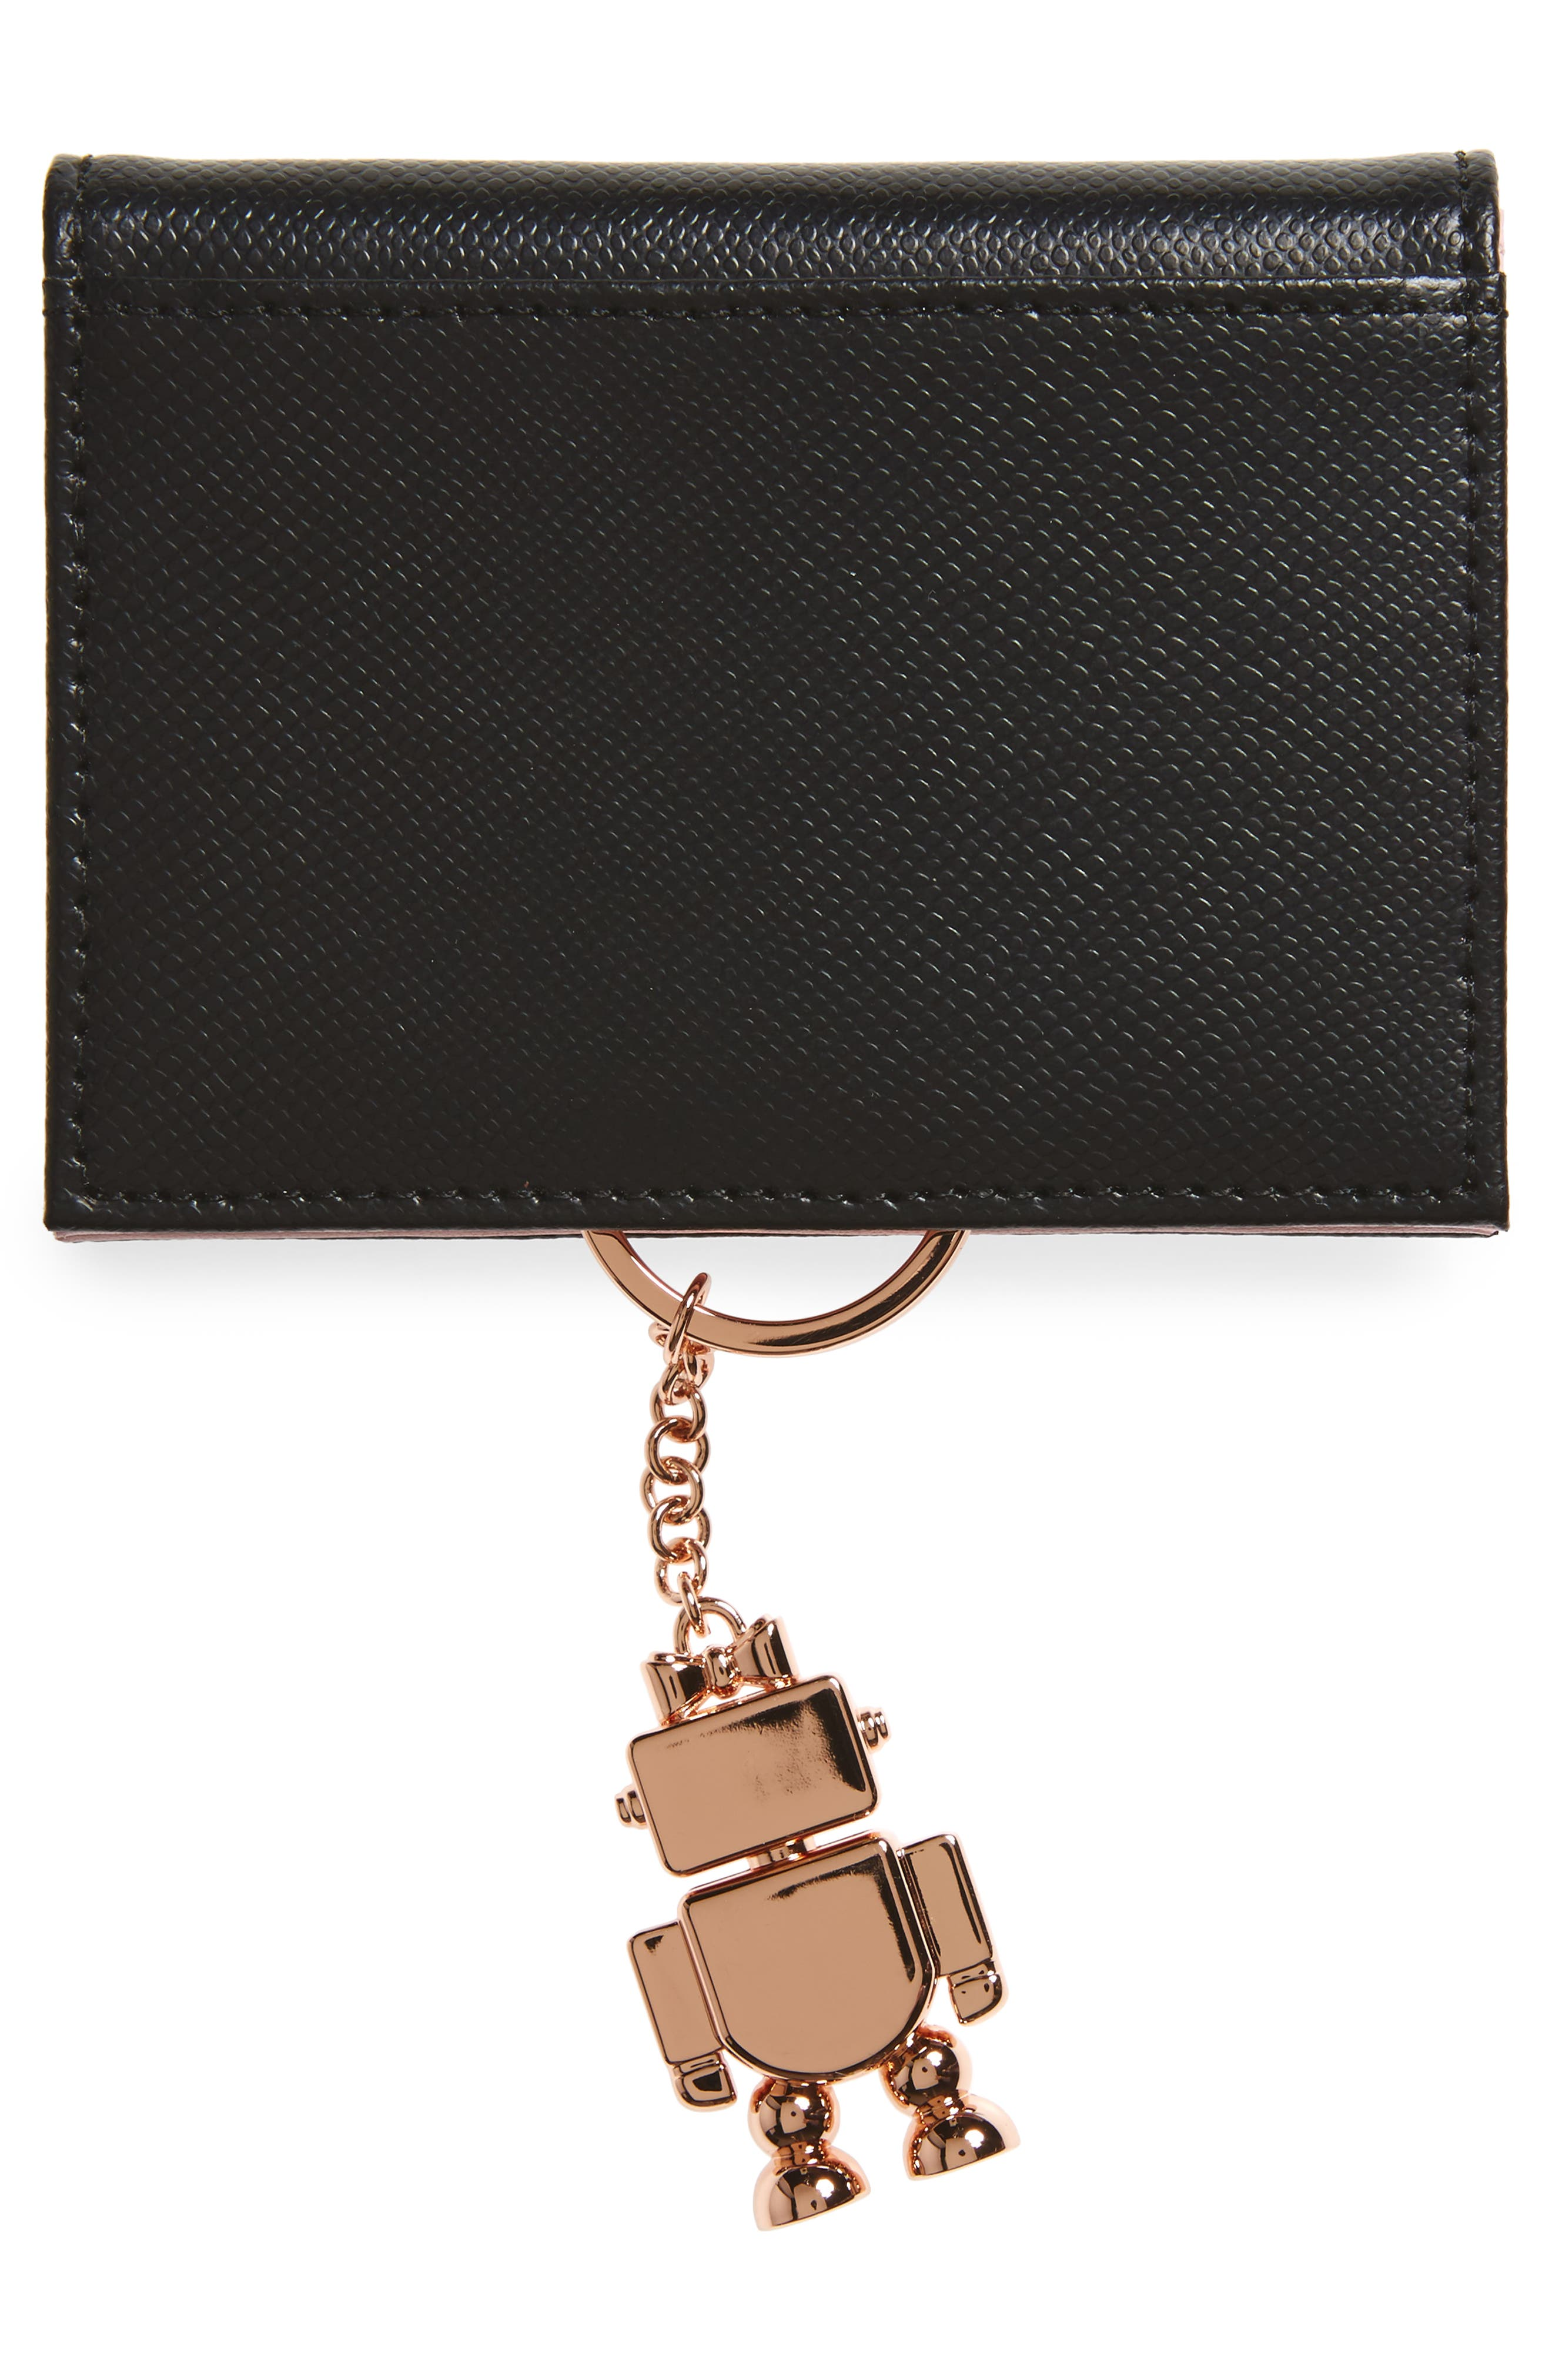 Leather Card Case with Robot Key Chain,                             Alternate thumbnail 3, color,                             Black